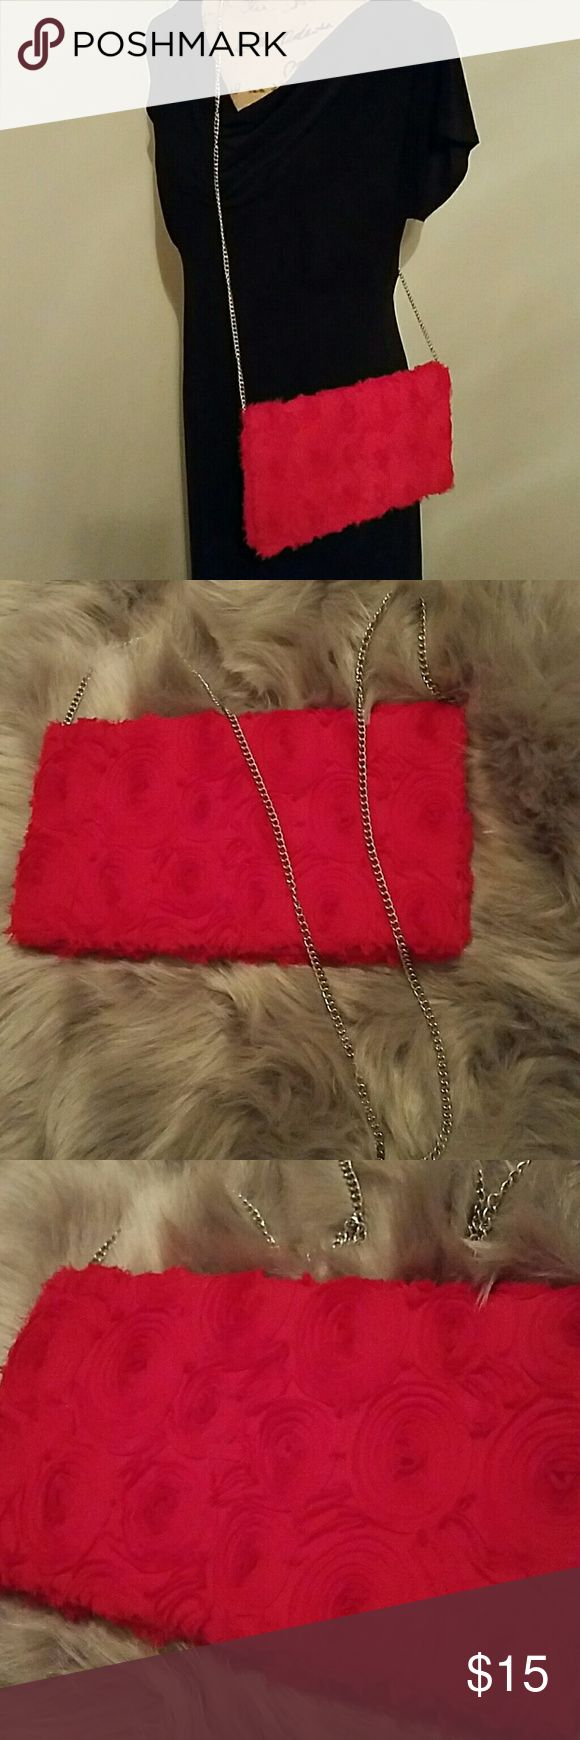 H&M purse ❤❤Priced to sell for Valentine's day! ❤❤Beautiful H&M red rosette crossbody or envelope clutch with attached chain strap. Perfect condition.  NWOT. H&M Bags